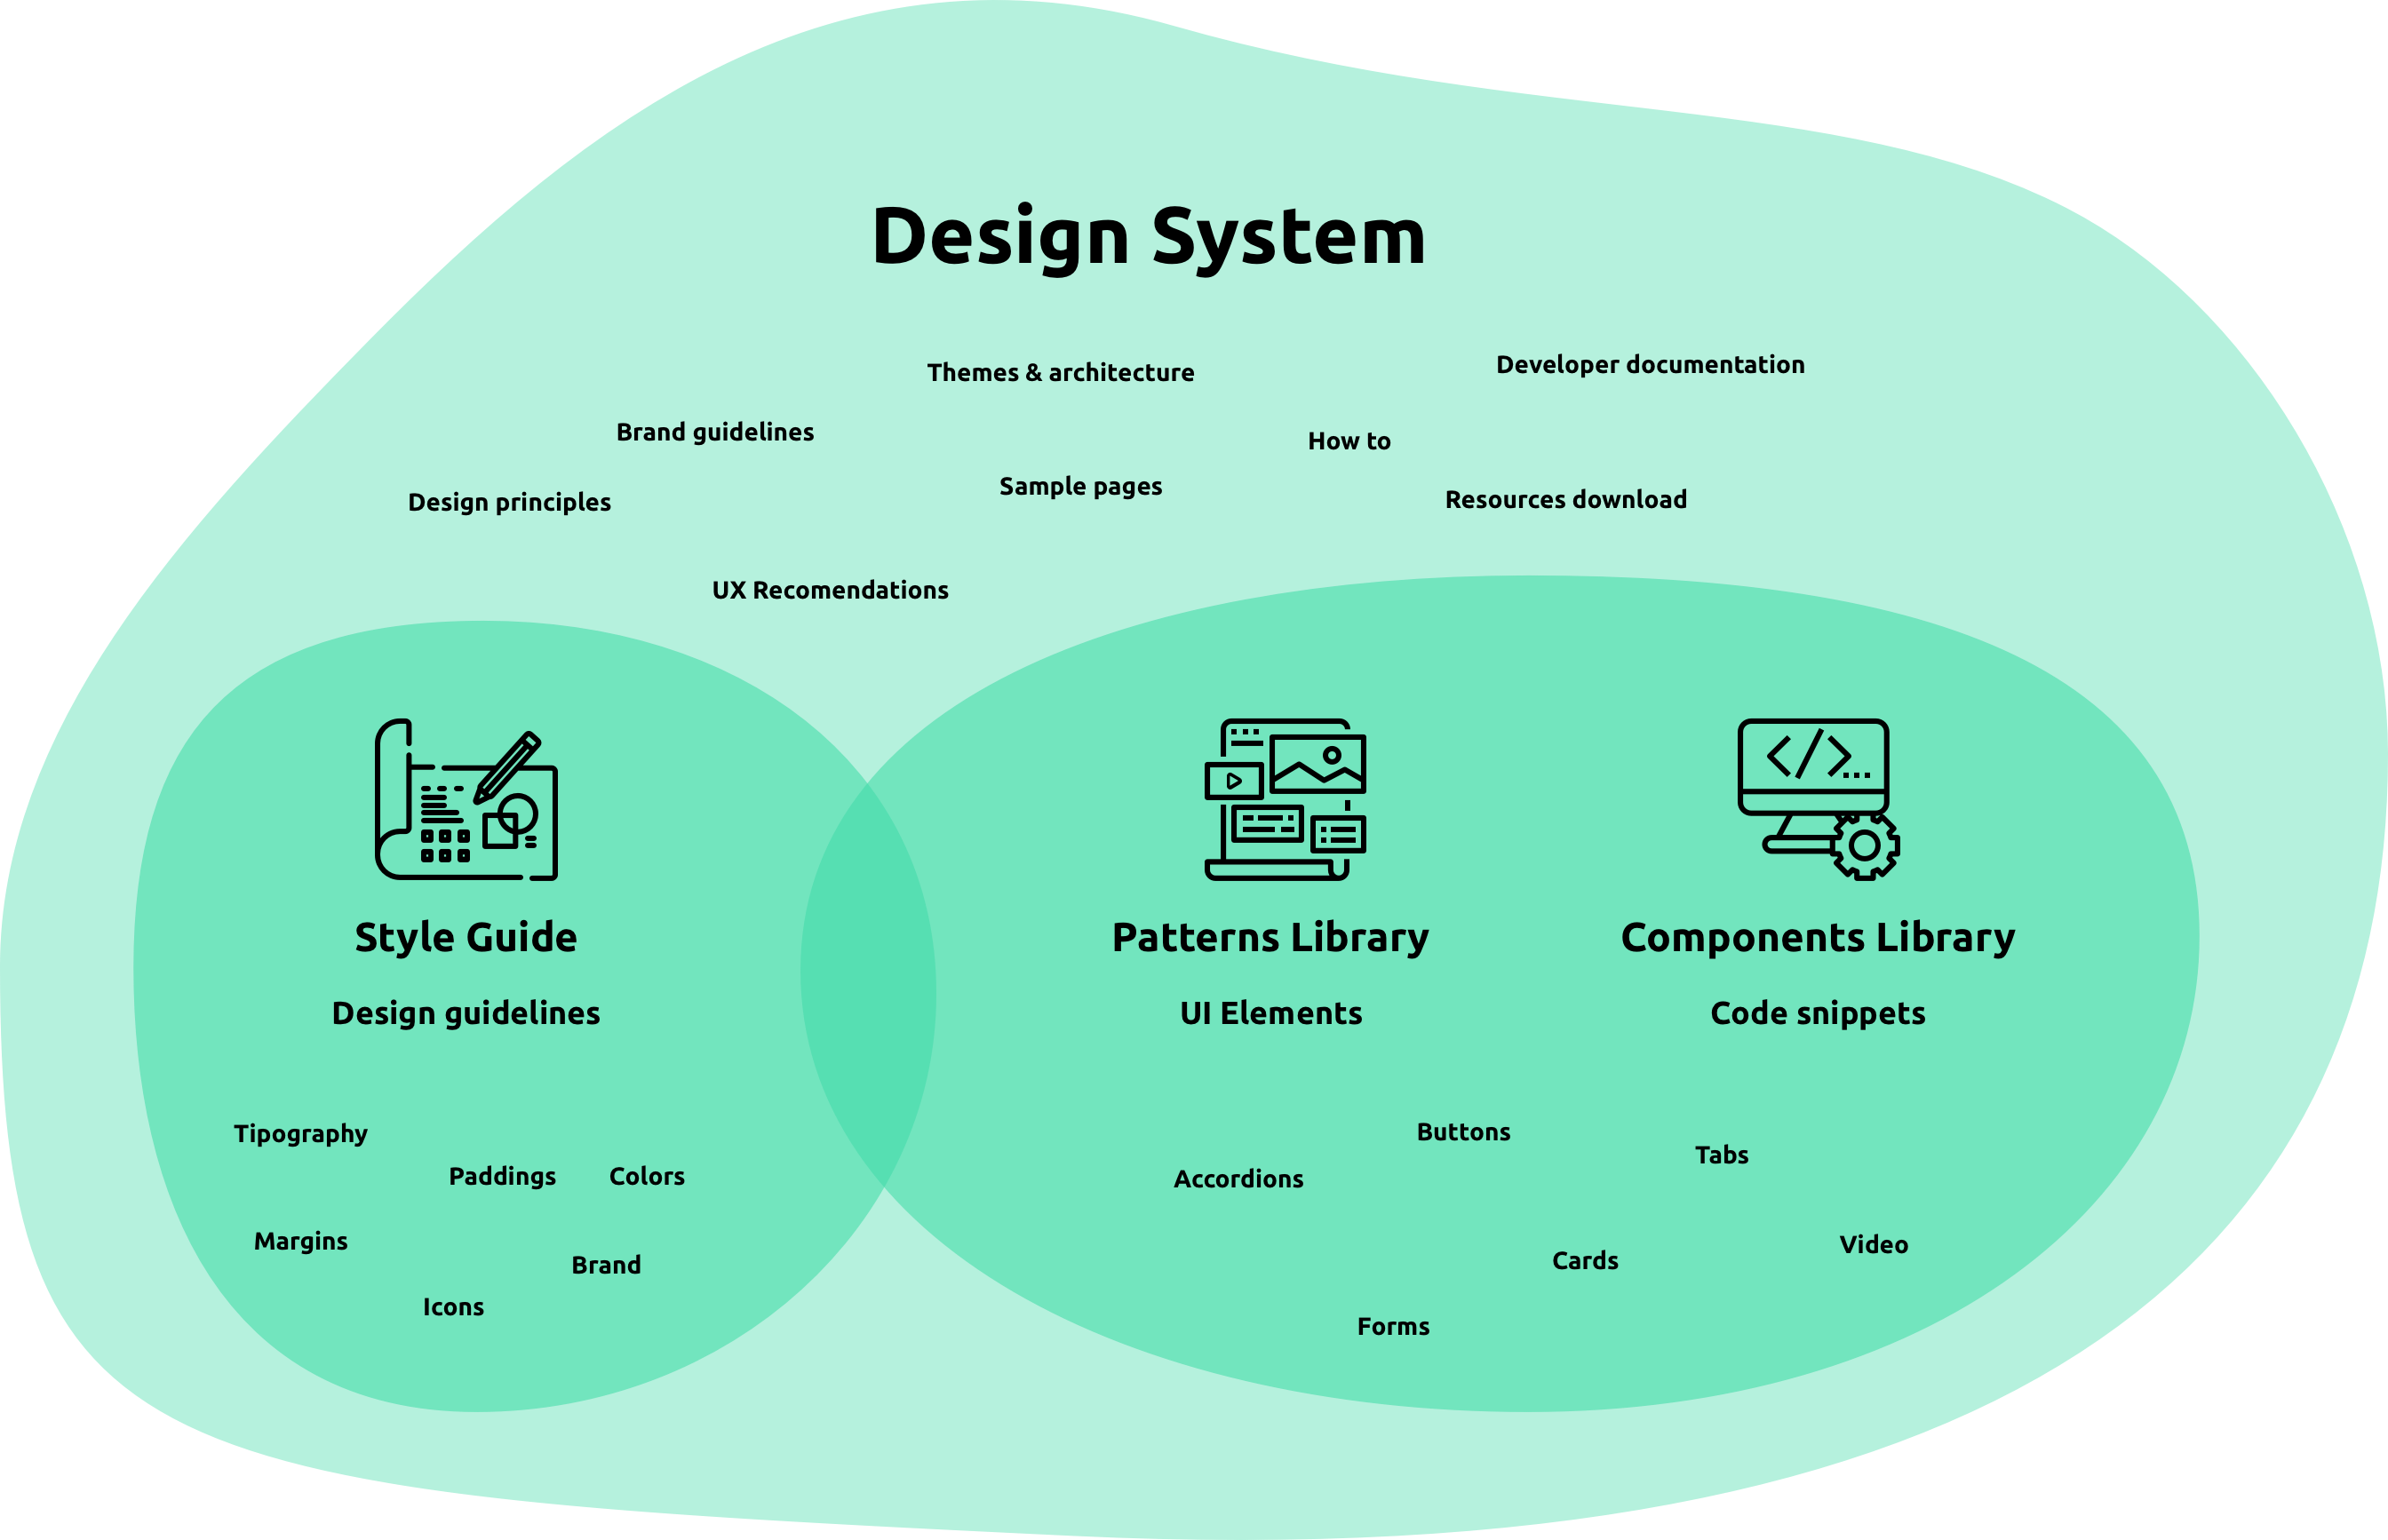 A design system visual explanation with green circles